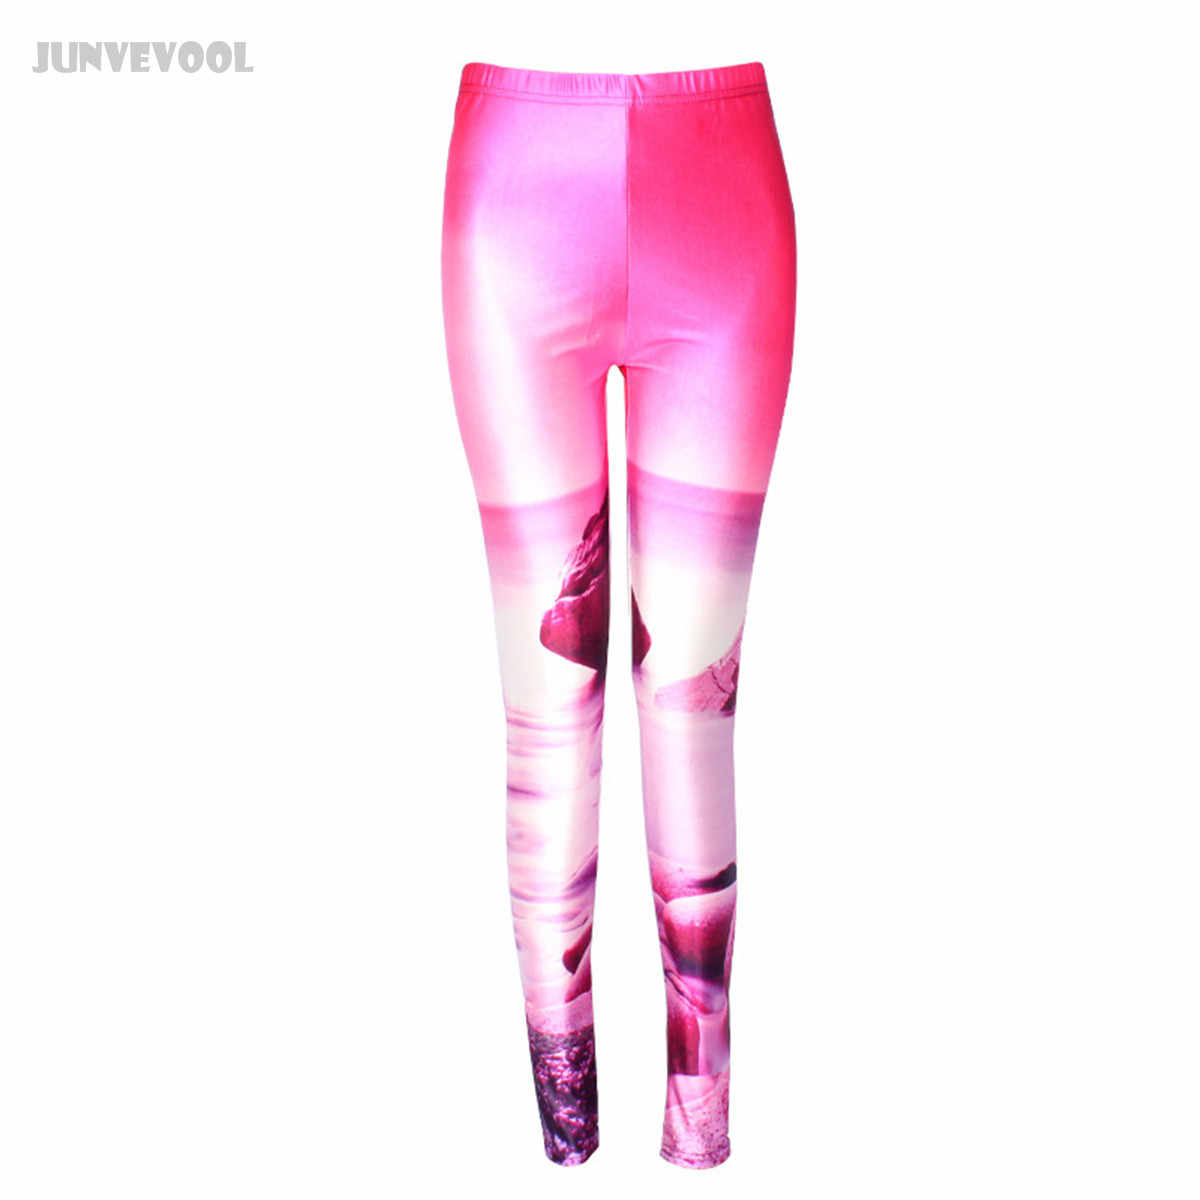 284b9df27c464 Leggings Adults Girl 3D Pink Ocean Stone Printed Sexy Women's Skinny  Trousers Solid Color Wet Look